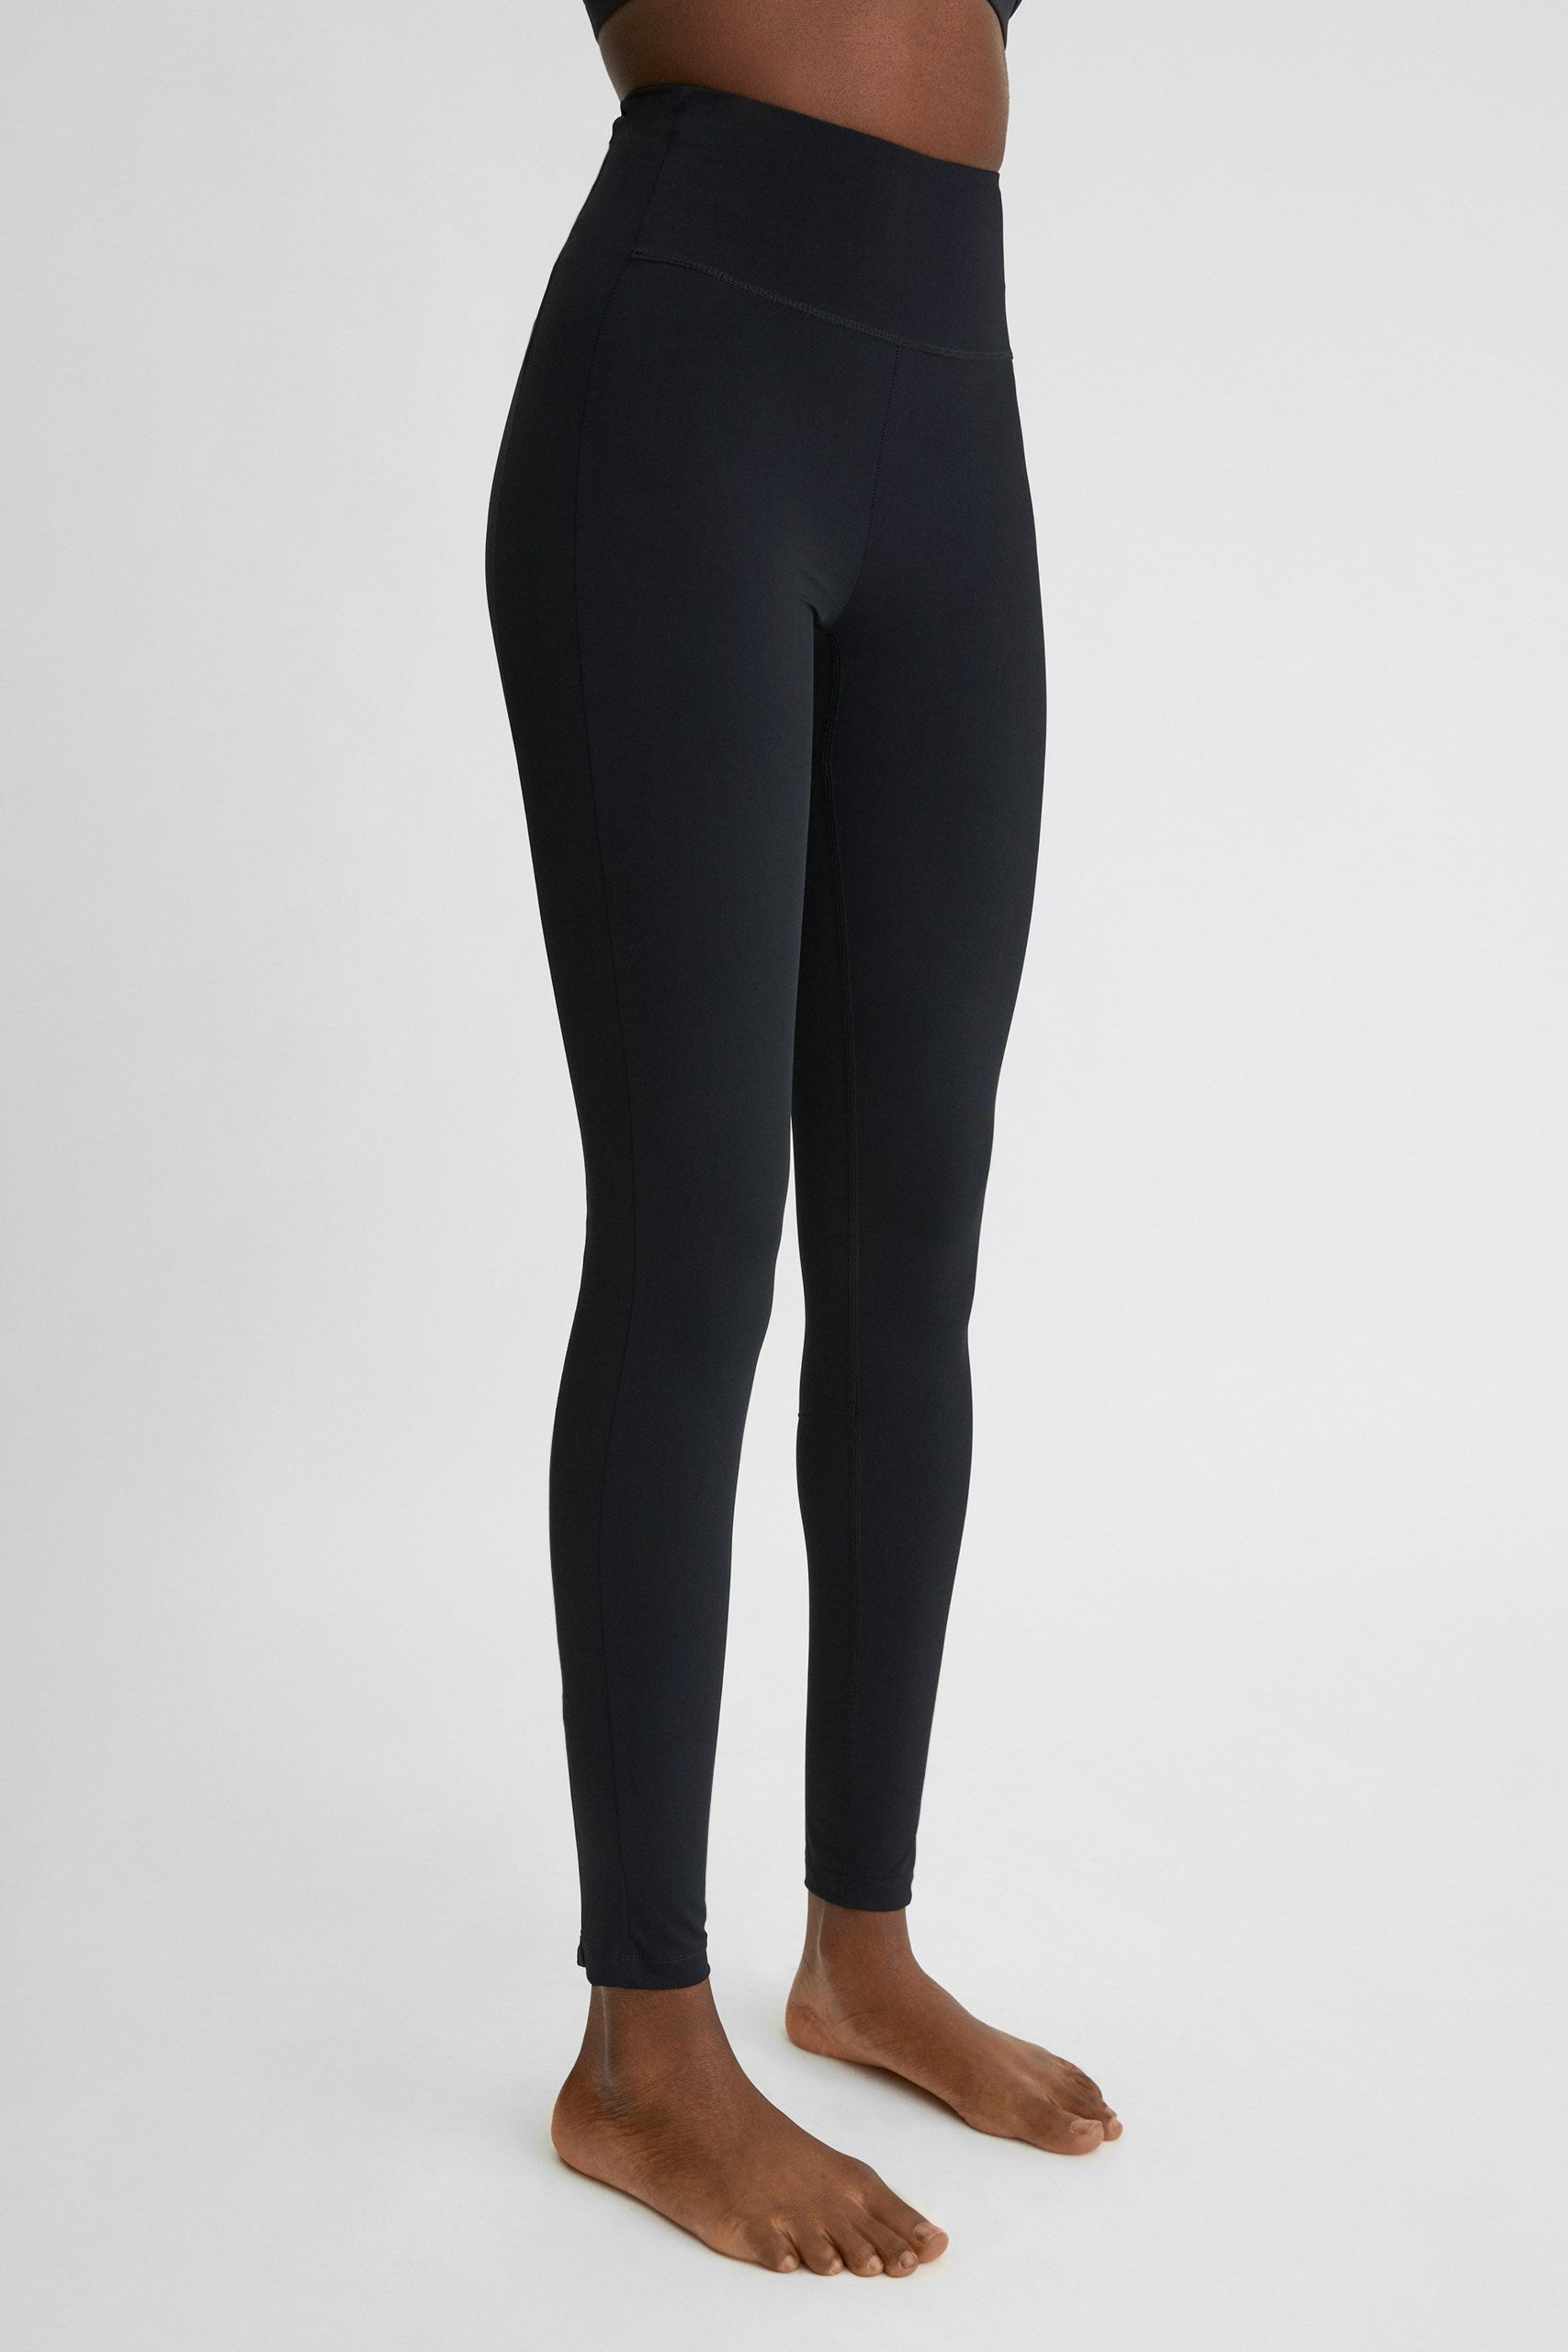 Compression Zip Legging - HoneyMustard